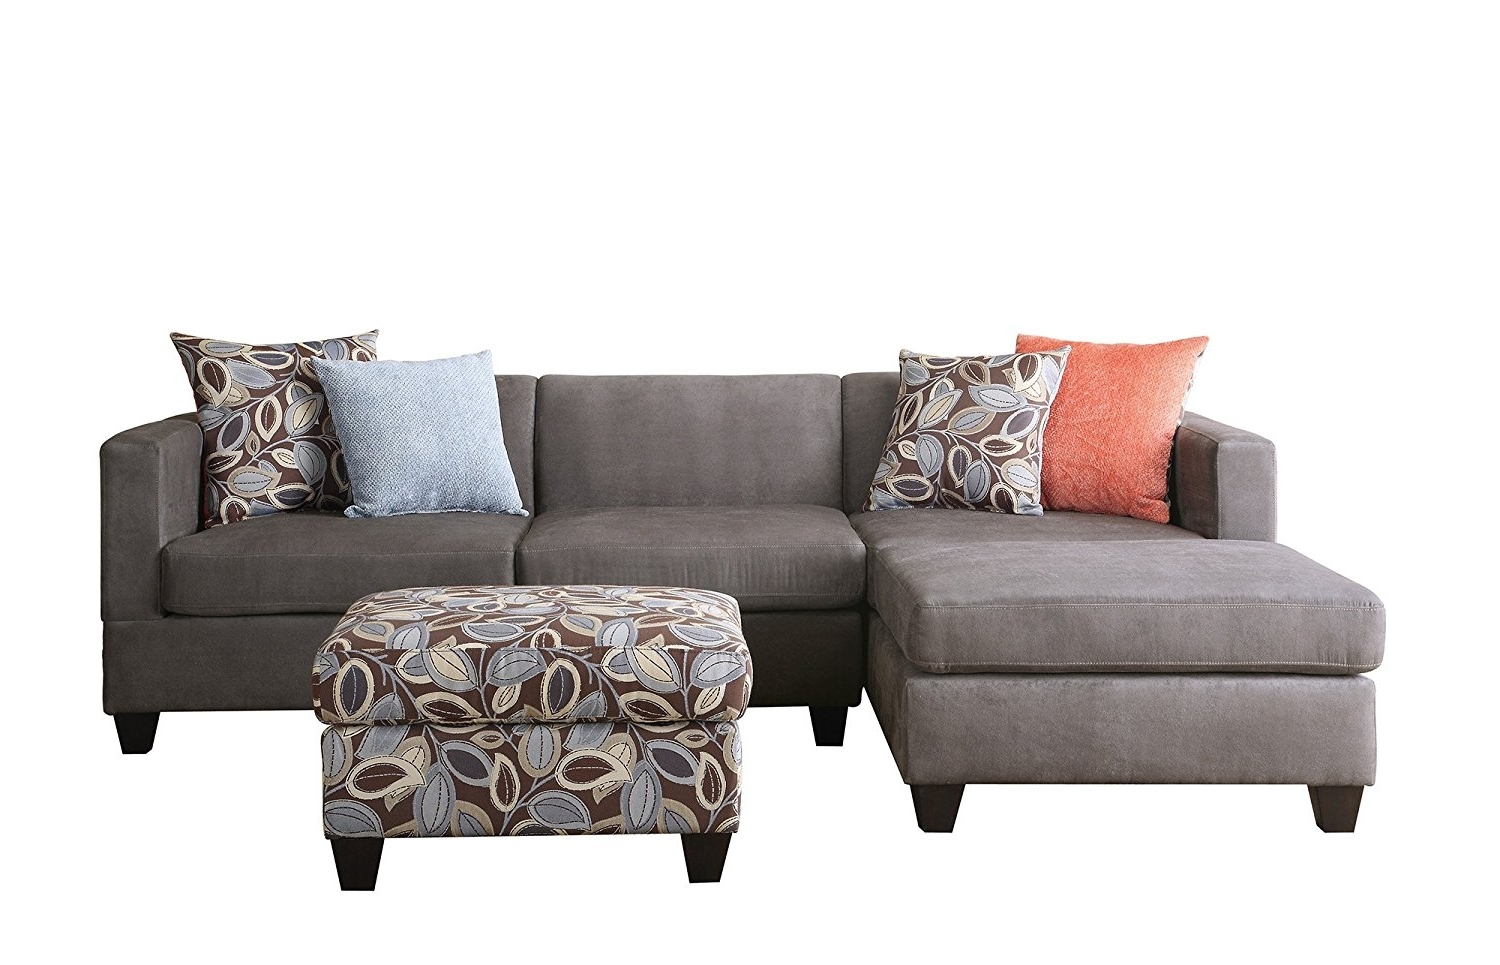 Sectional Sofas At Amazon Within 2018 Amazon: Bobkona Poundex Simplistic Collection 3 Piece (View 10 of 15)